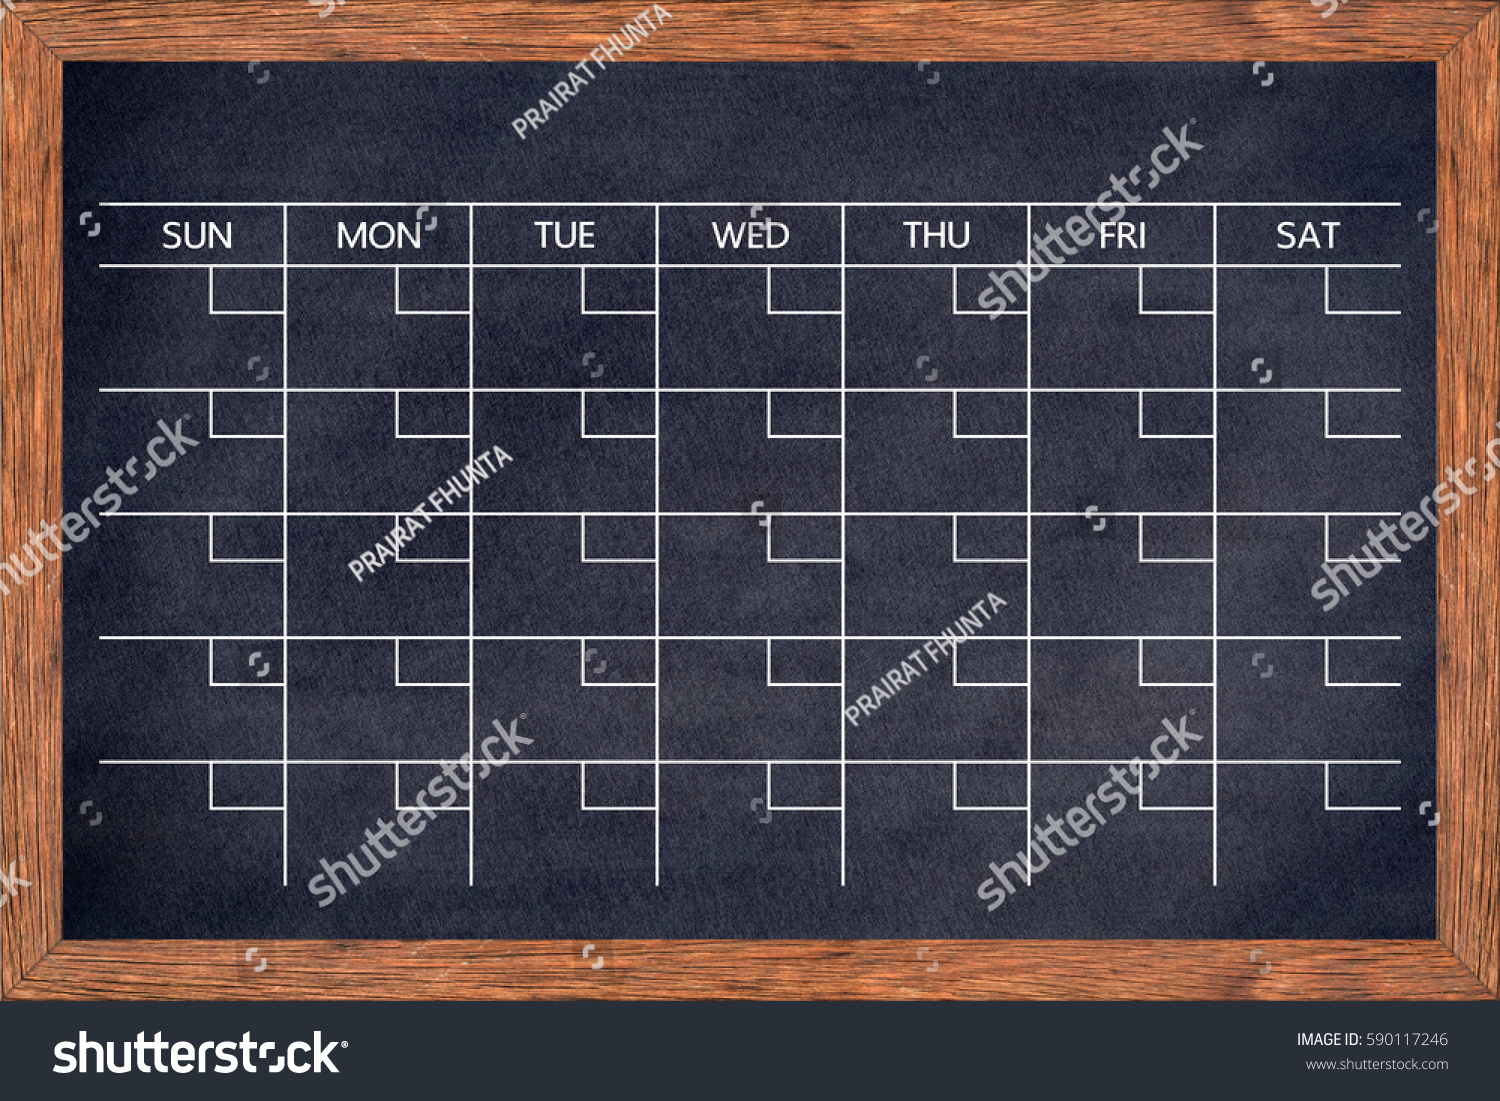 office chalkboard. Chalkboard Calendar For Home Or Office Organization, Blackboard Monthly Scheduling Planner, Texture Add